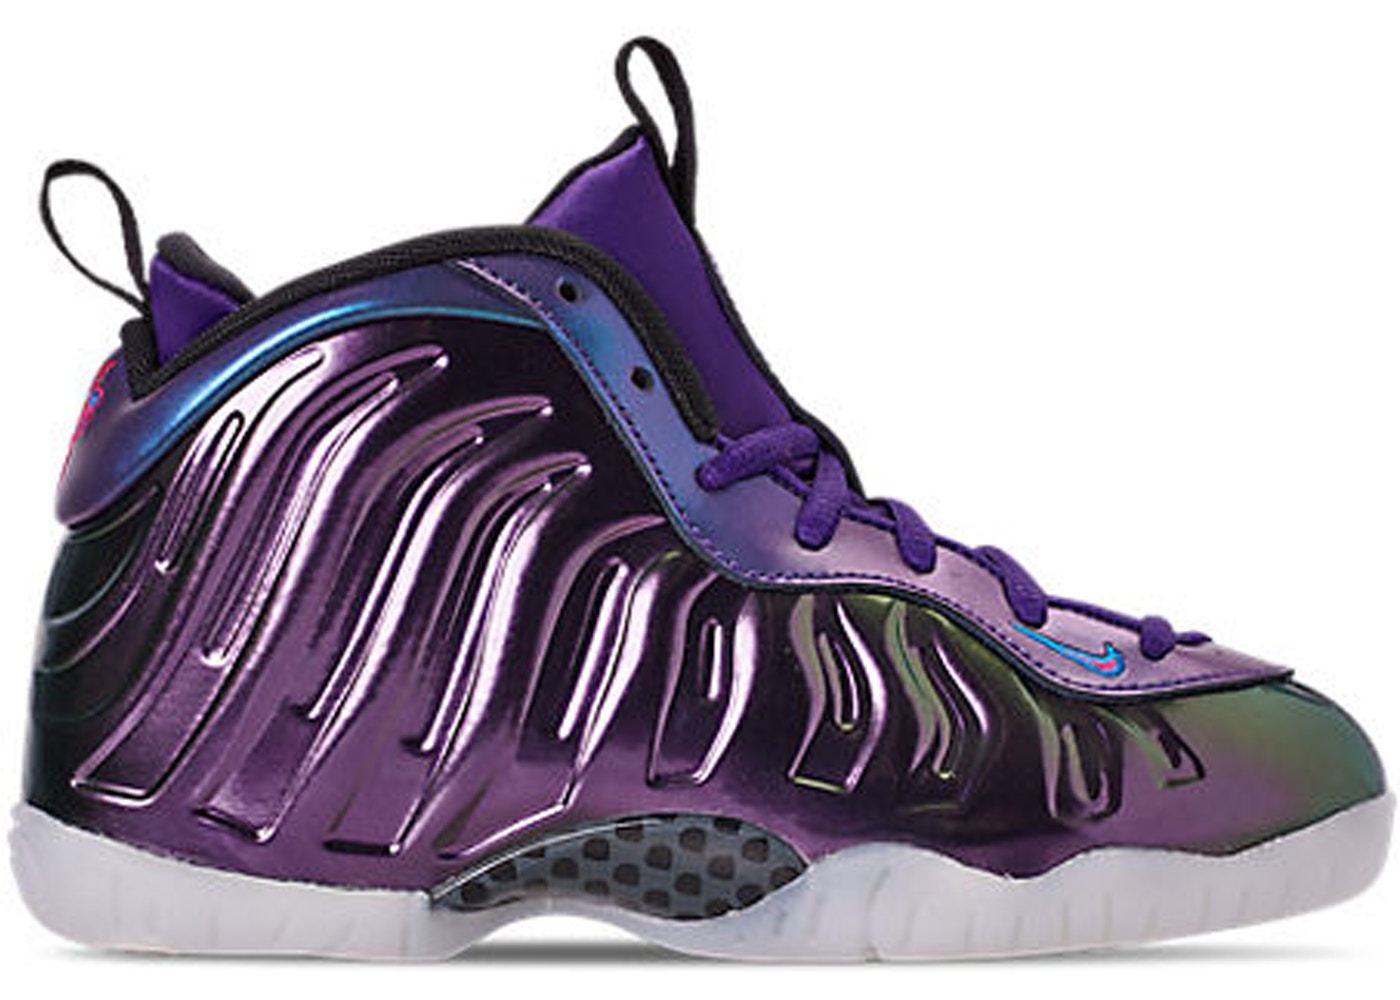 cee1eb3af06 Air Foamposite One Iridescent Purple (PS) - 723946-602